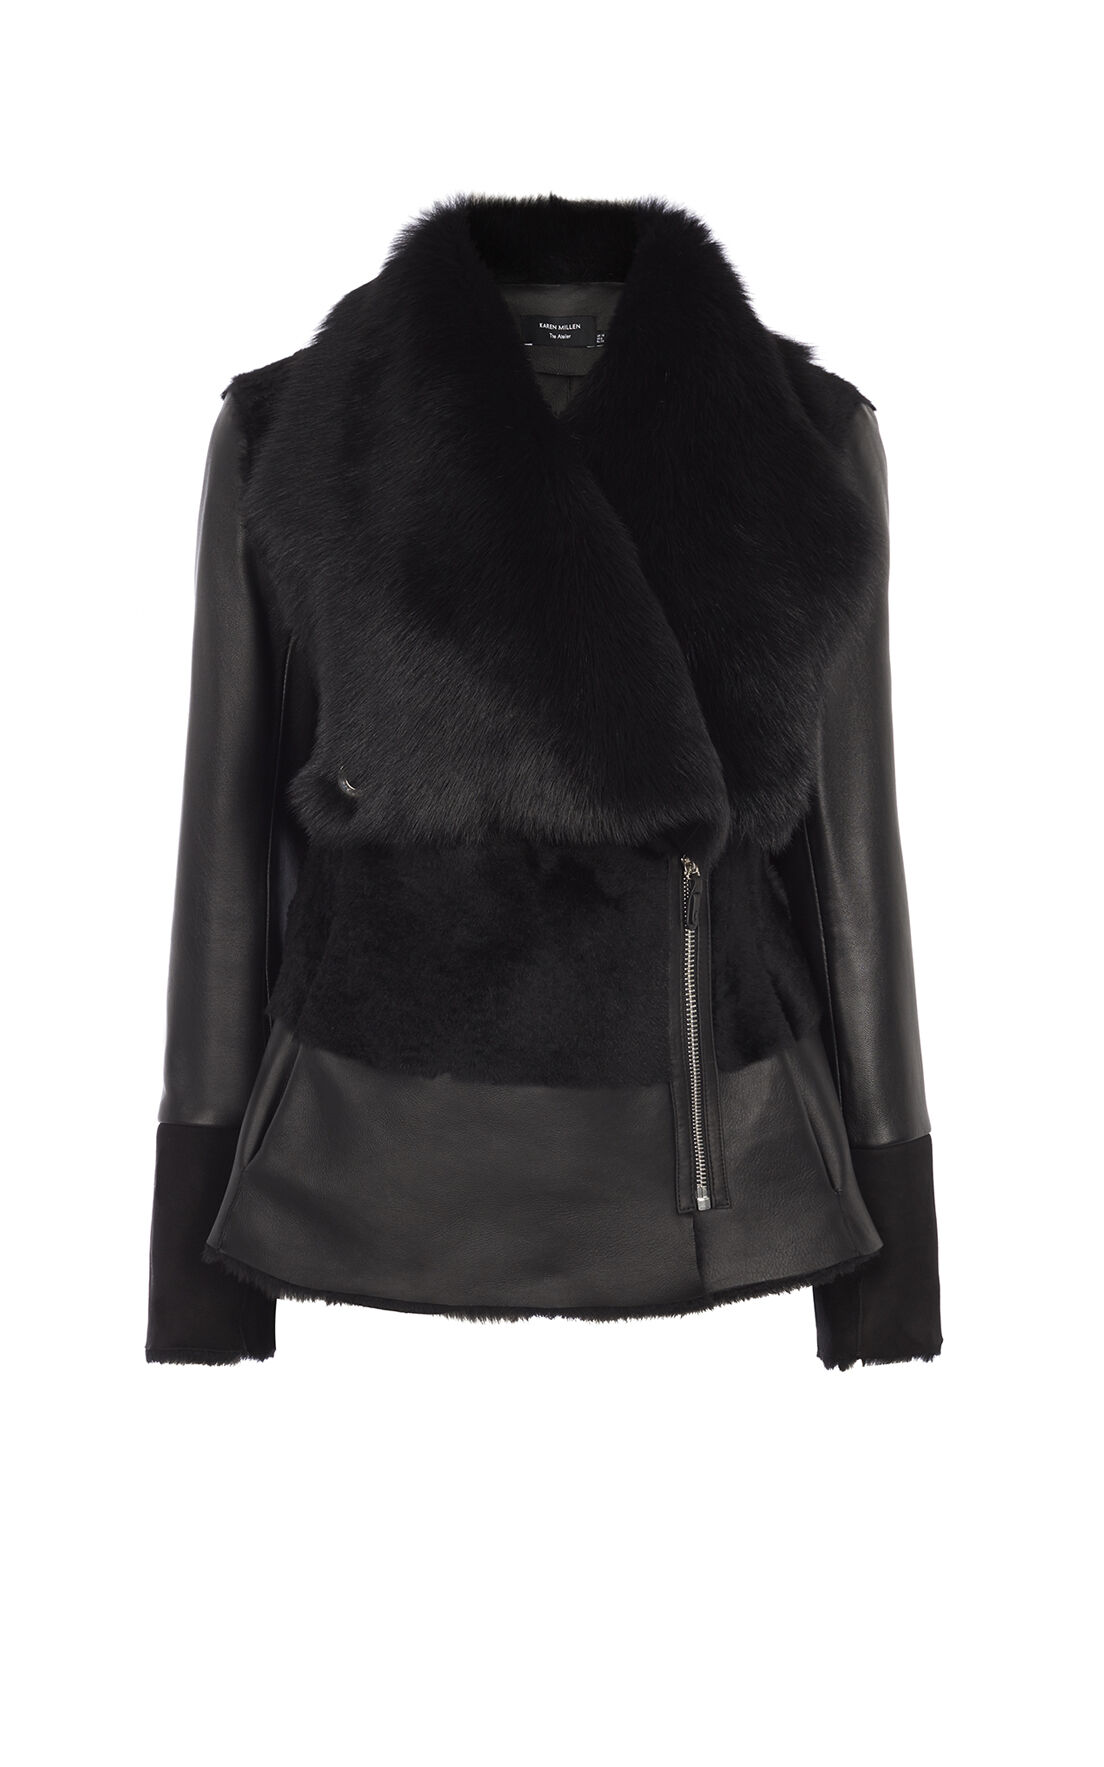 Karen Millen, BLACK SHEARLING JACKET Black 0